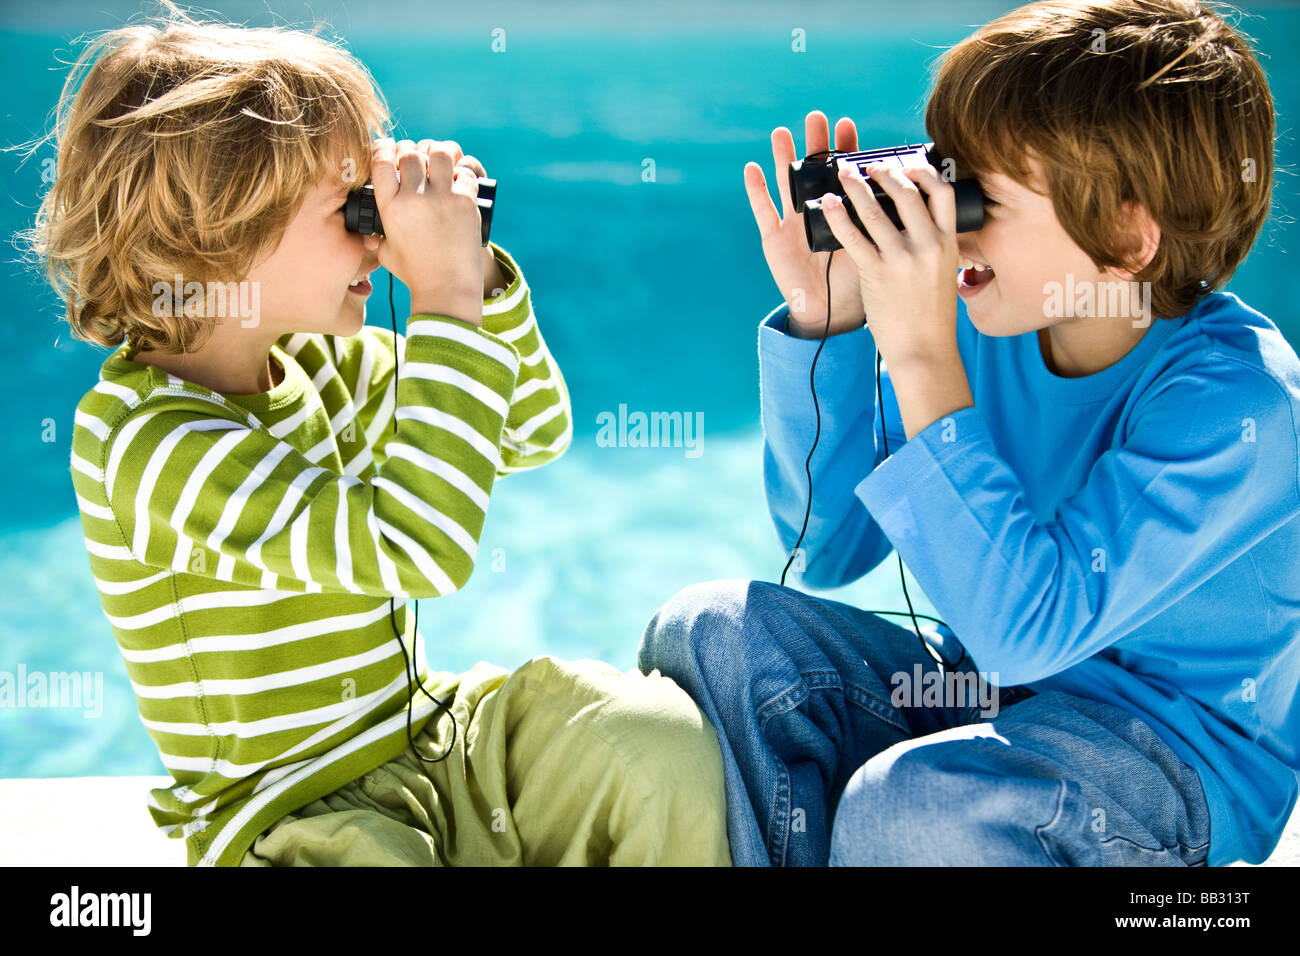 Two boys looking at each other through binoculars at the poolside - Stock Image